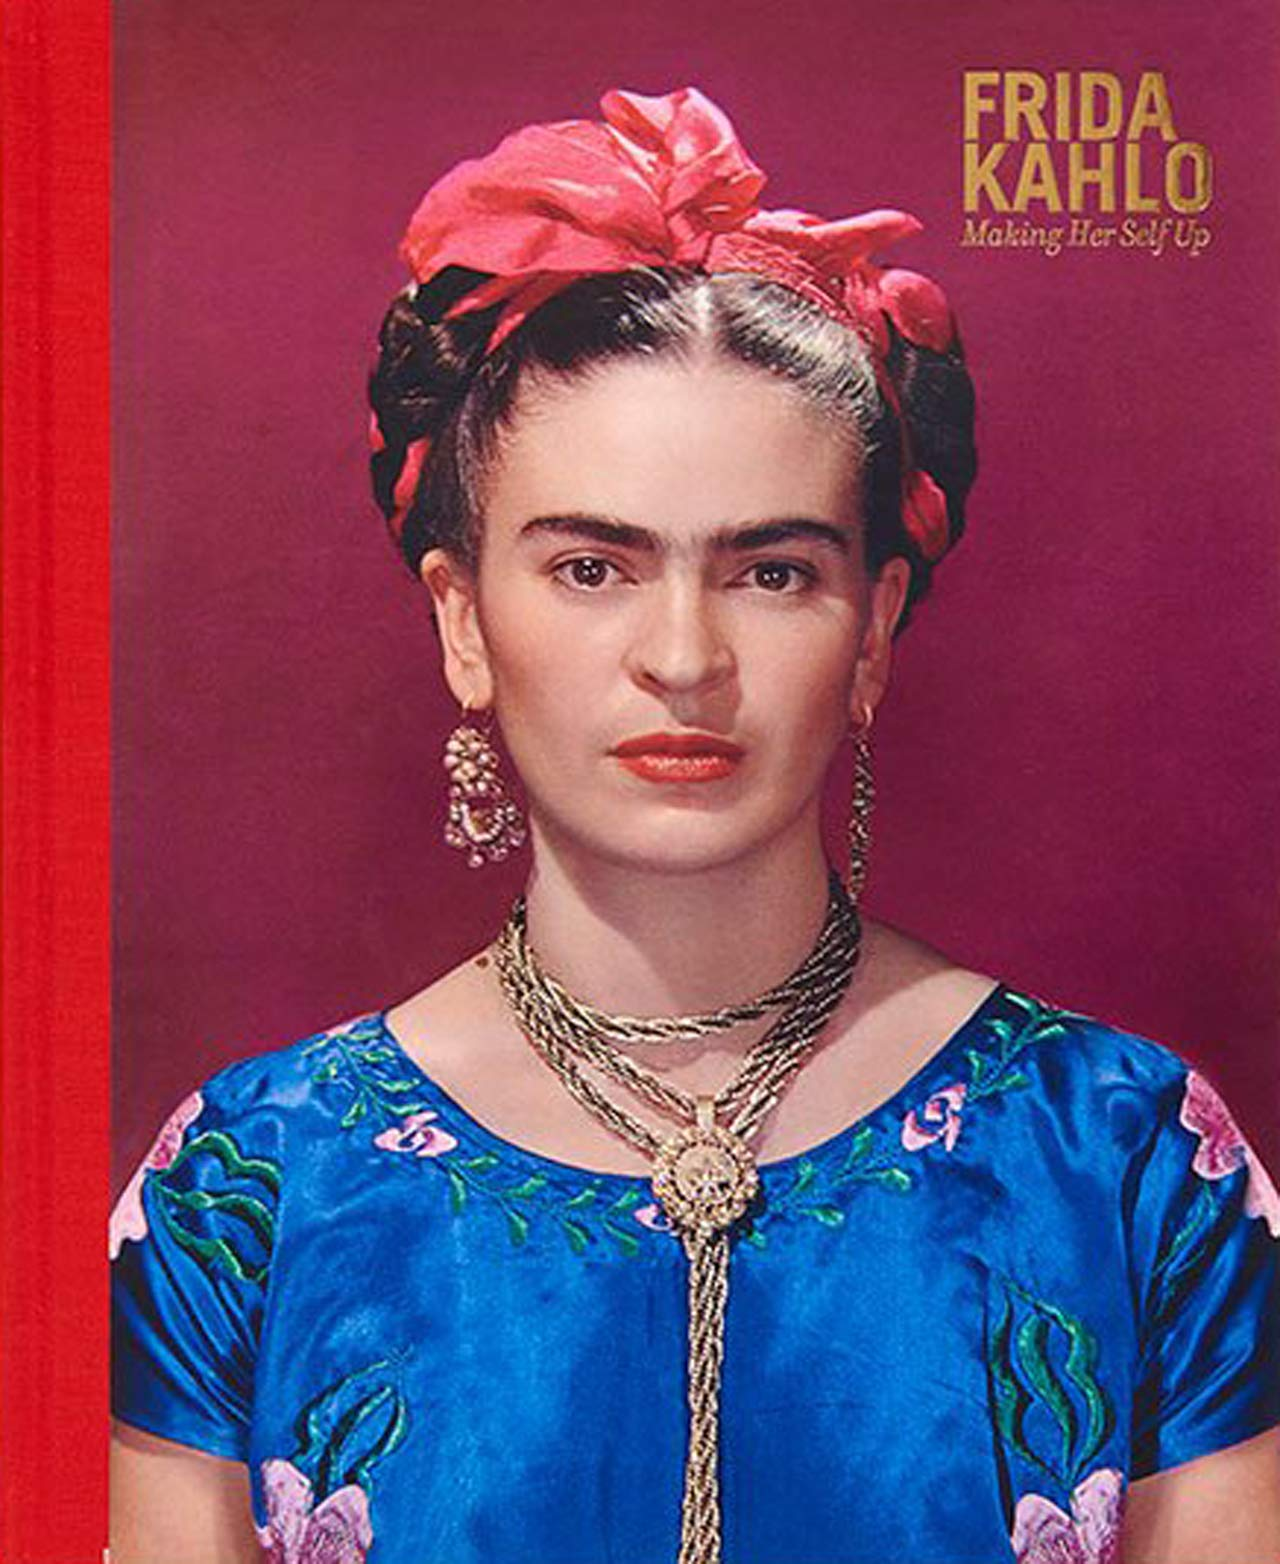 Frida Kahlo: Making Her Self Up: Claire Wilcox, Circe